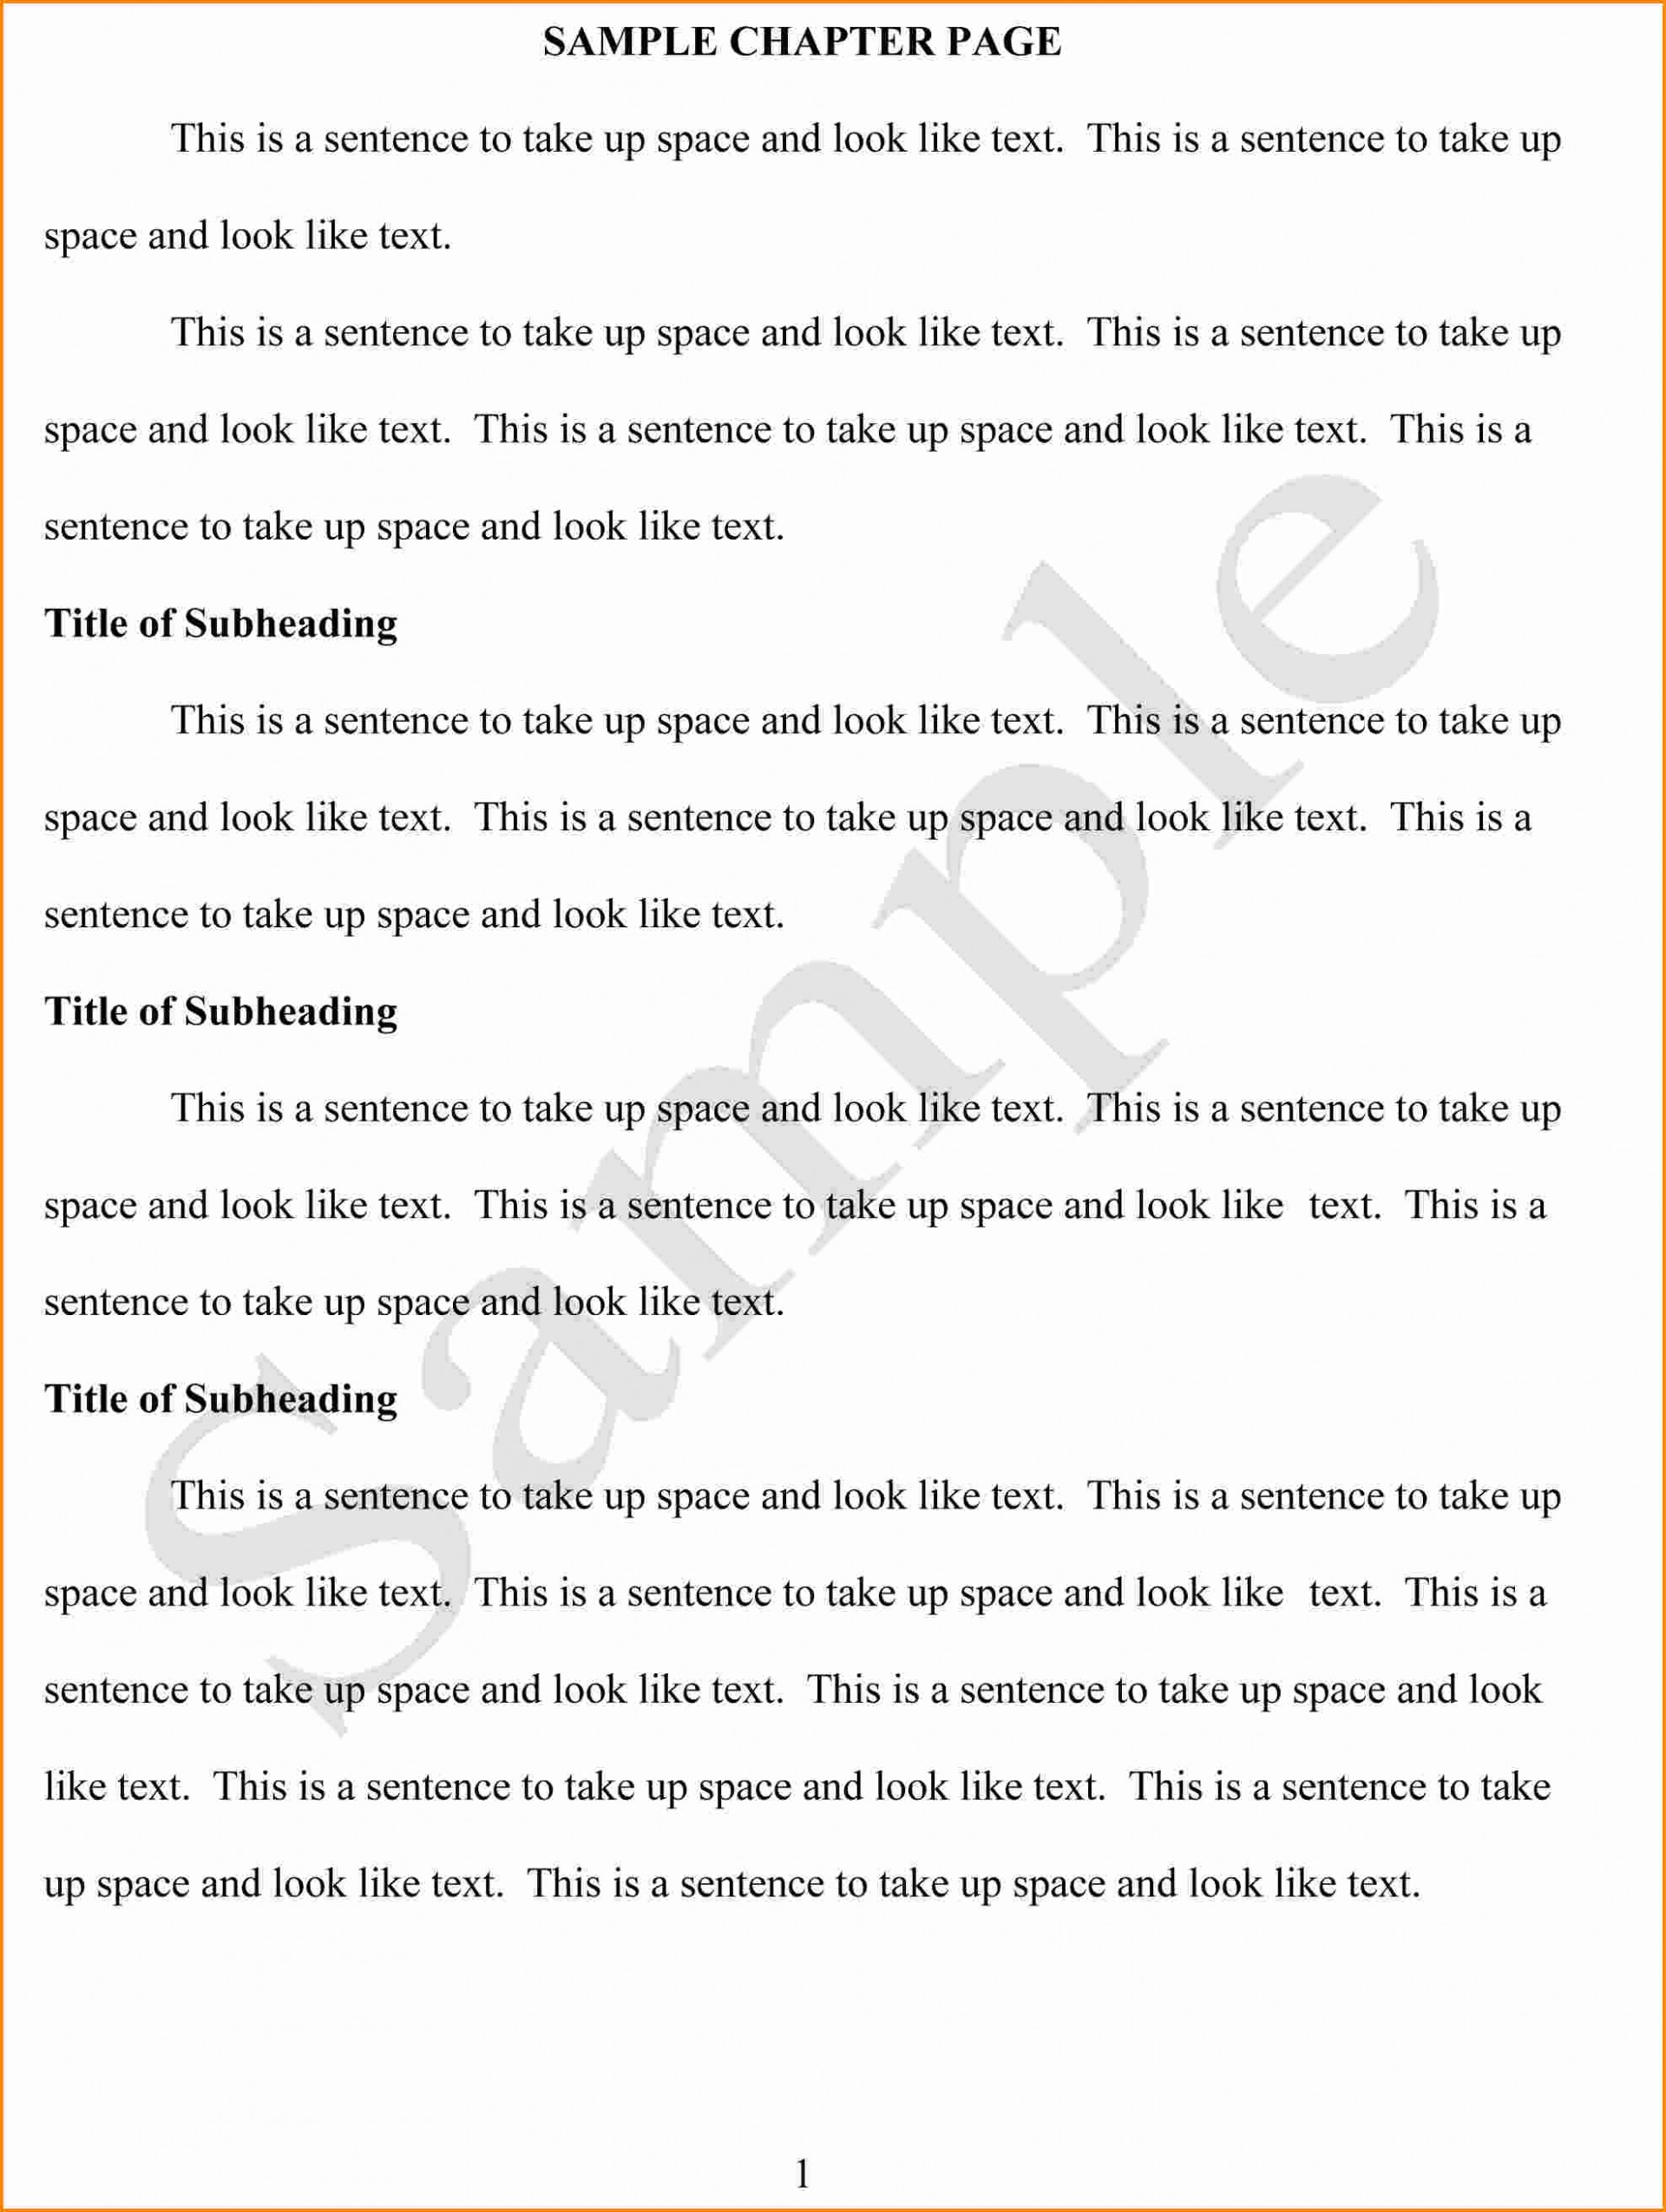 006 Thesis Essay Bullying About In Schools Format Of Persuasive On High School Application Samples Example Amazing Afrikaans Pdf 1920